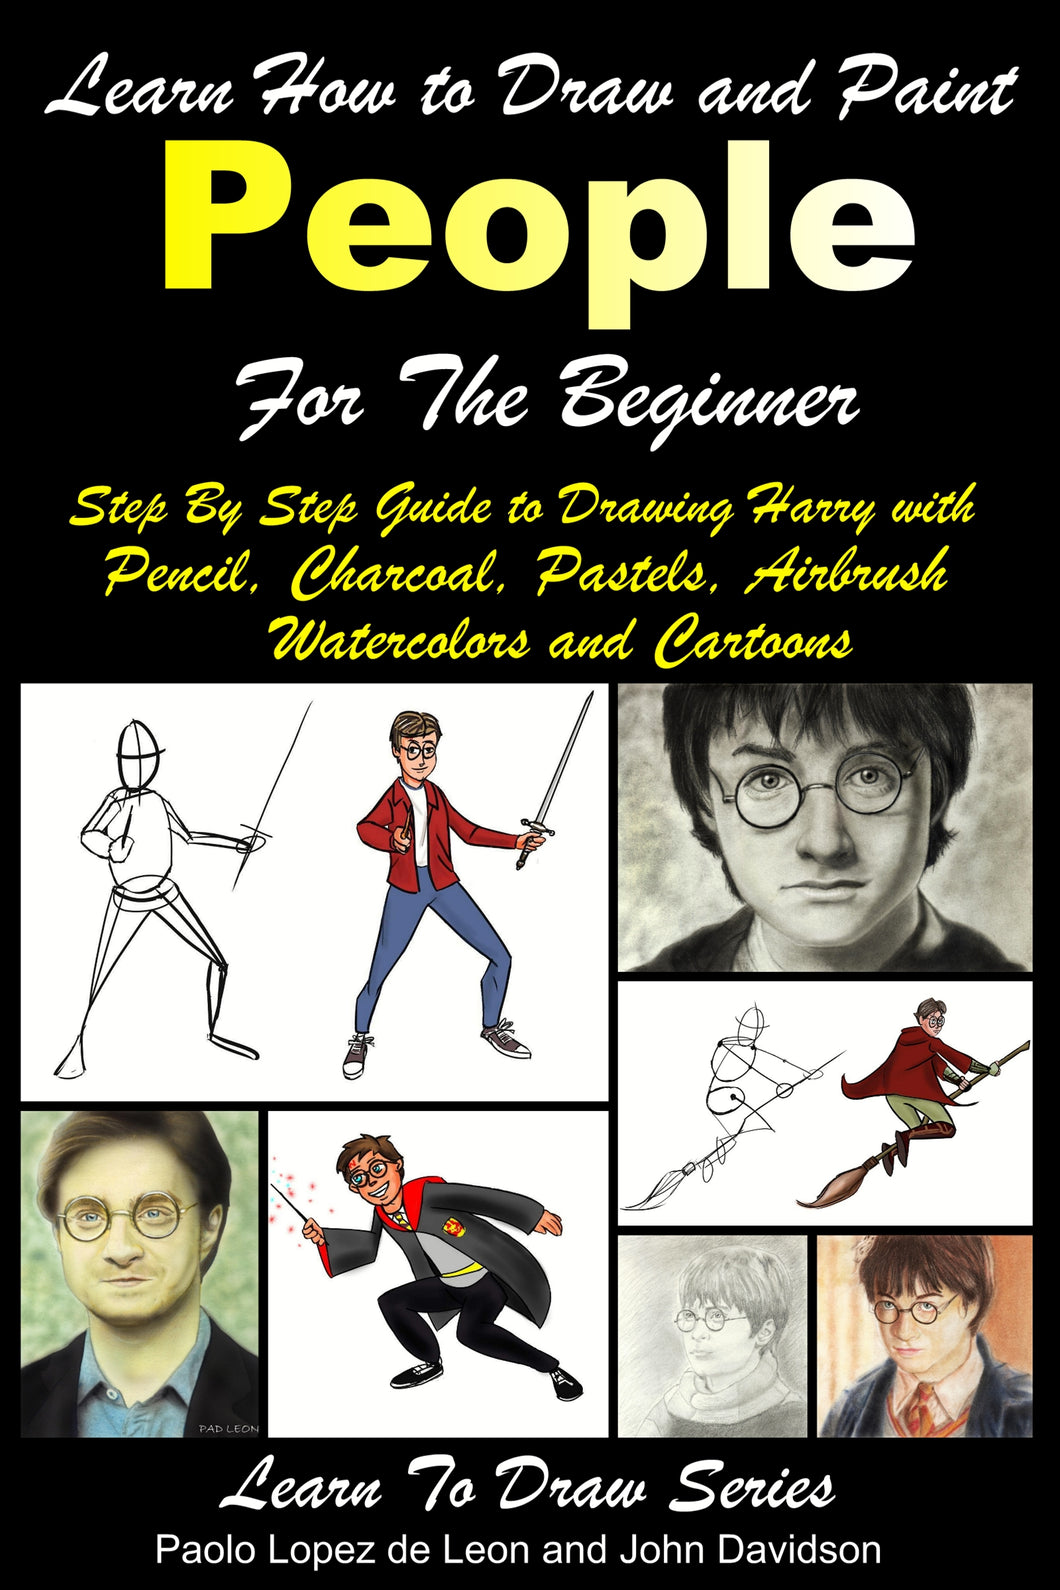 Learn How to Draw and Paint People For the Beginner - Step By Step Guide to Drawing Harry with Pencil, Charcoal, Pastels, Airbrush Watercolors and Cartoons